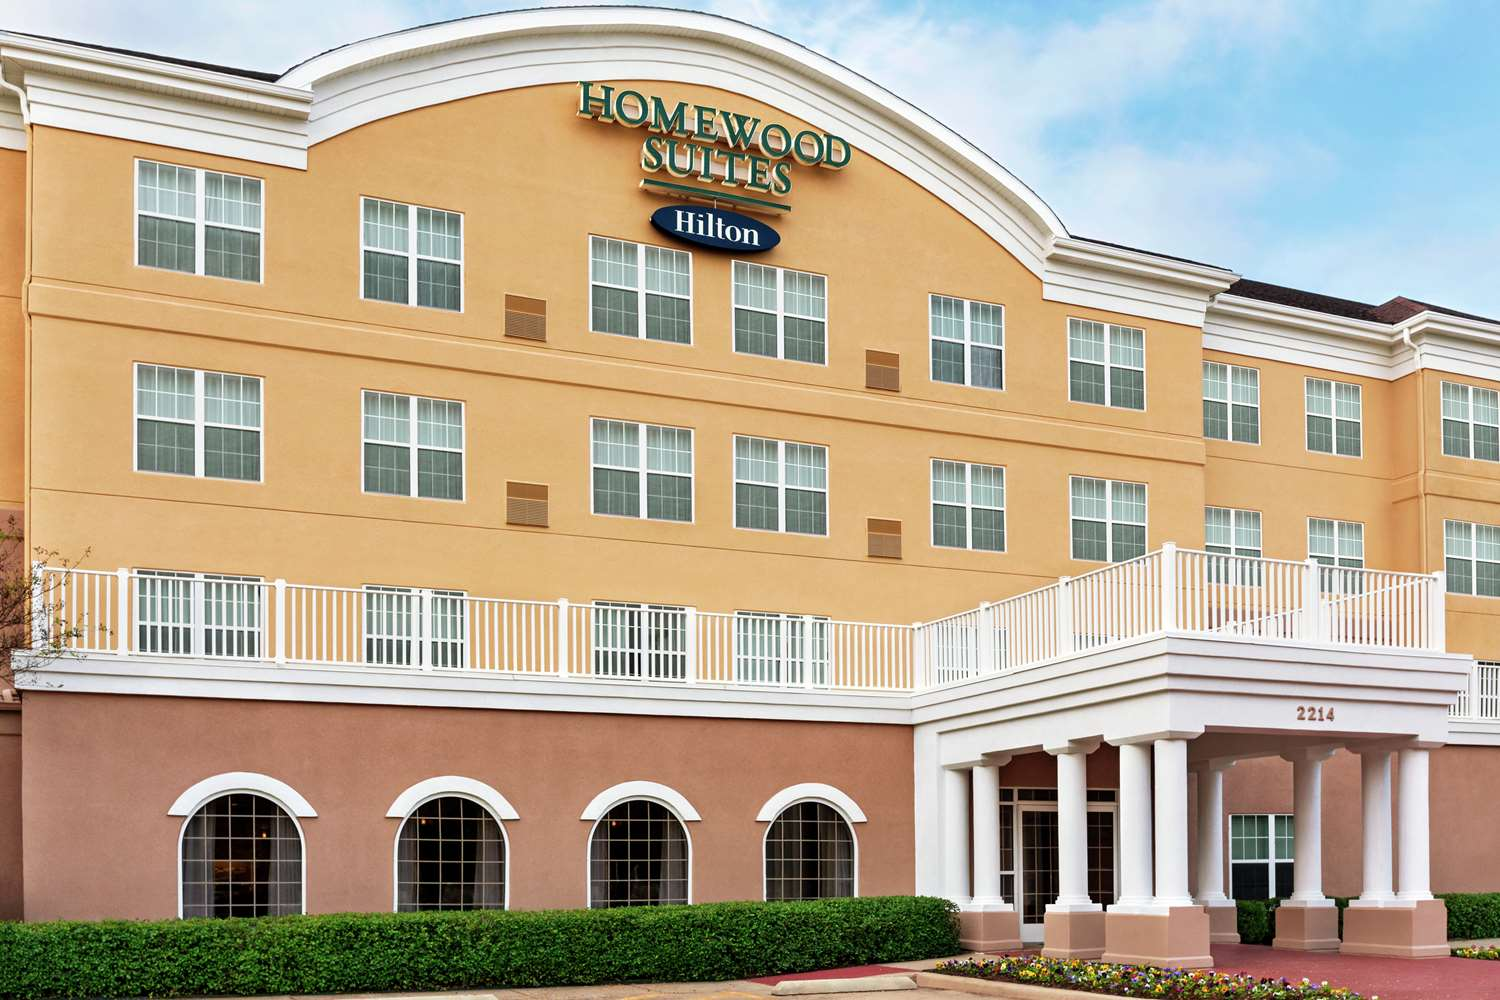 Homewood Suites by Hilton Grapevine